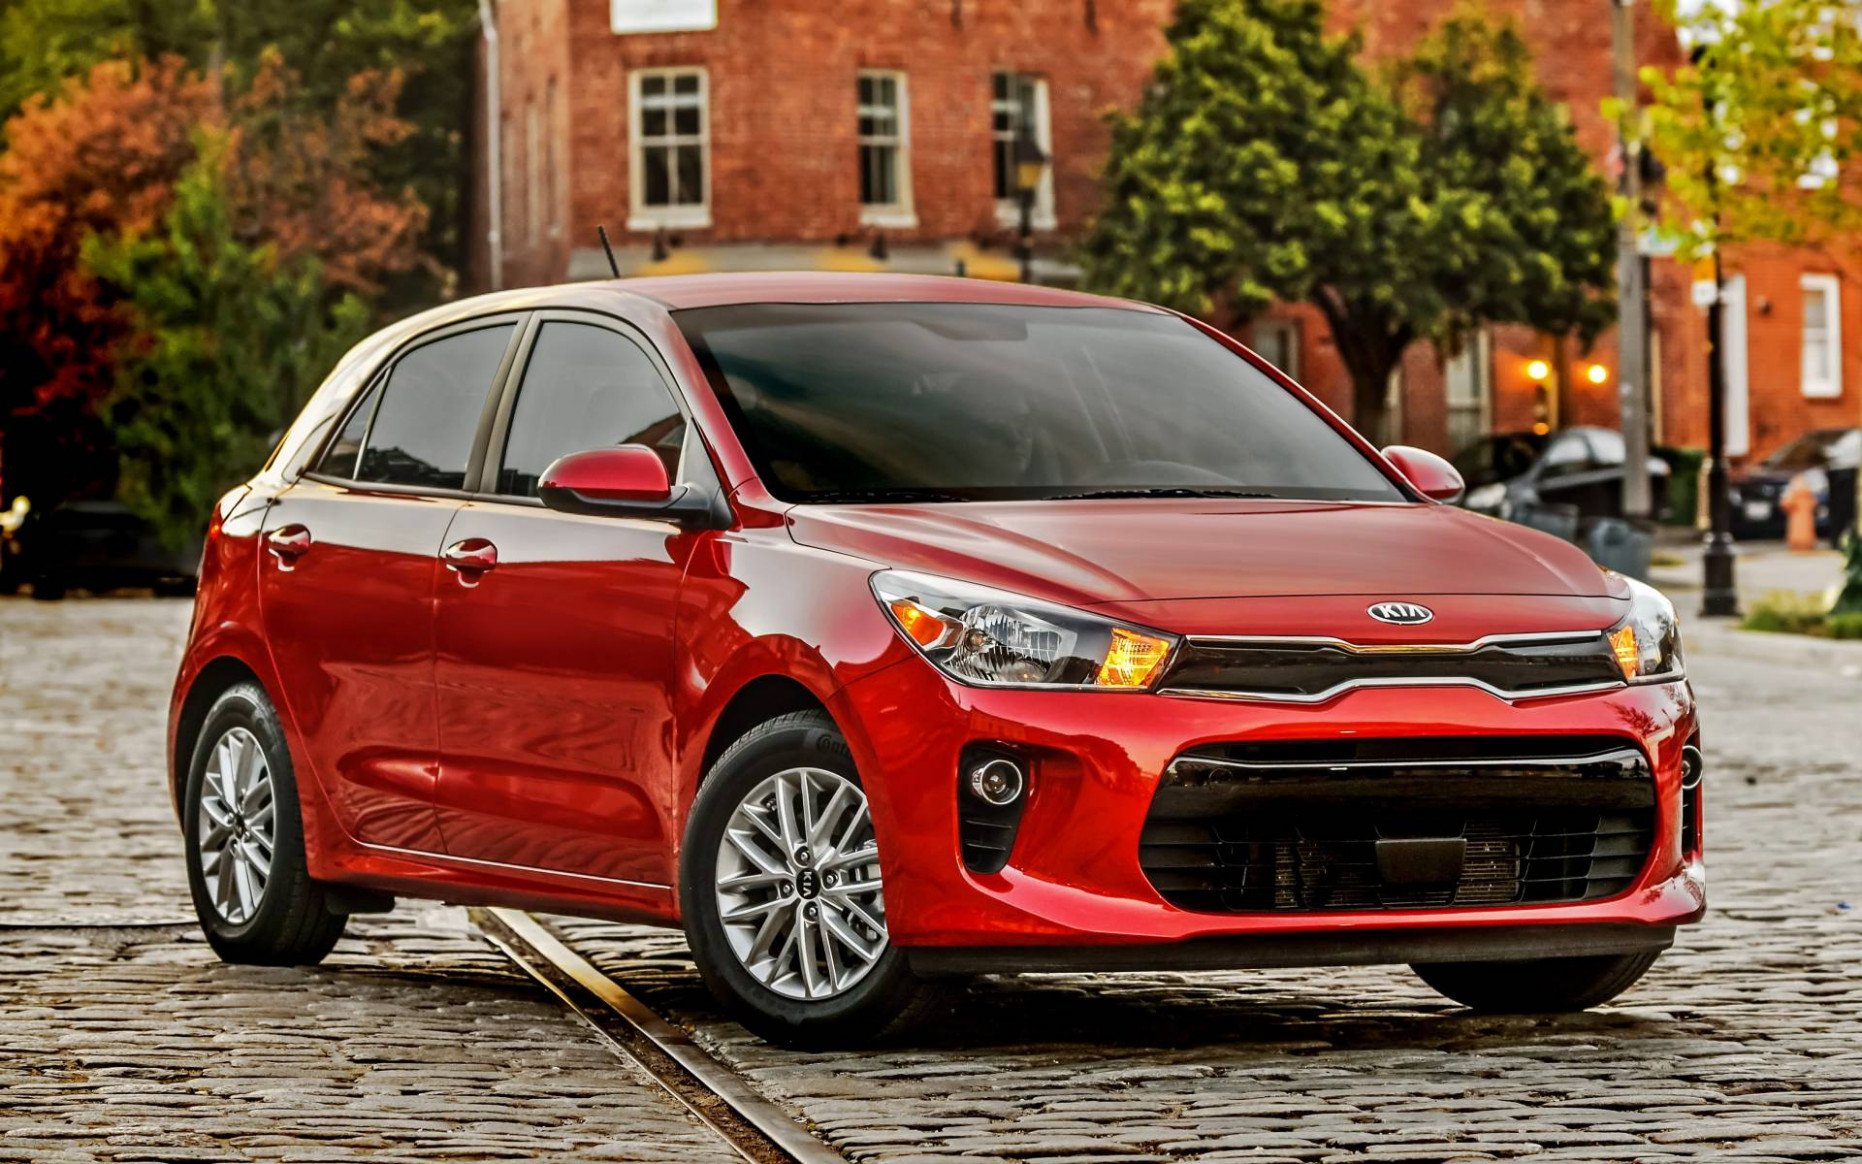 6 Kia Rio - News, reviews, picture galleries and videos - The ..